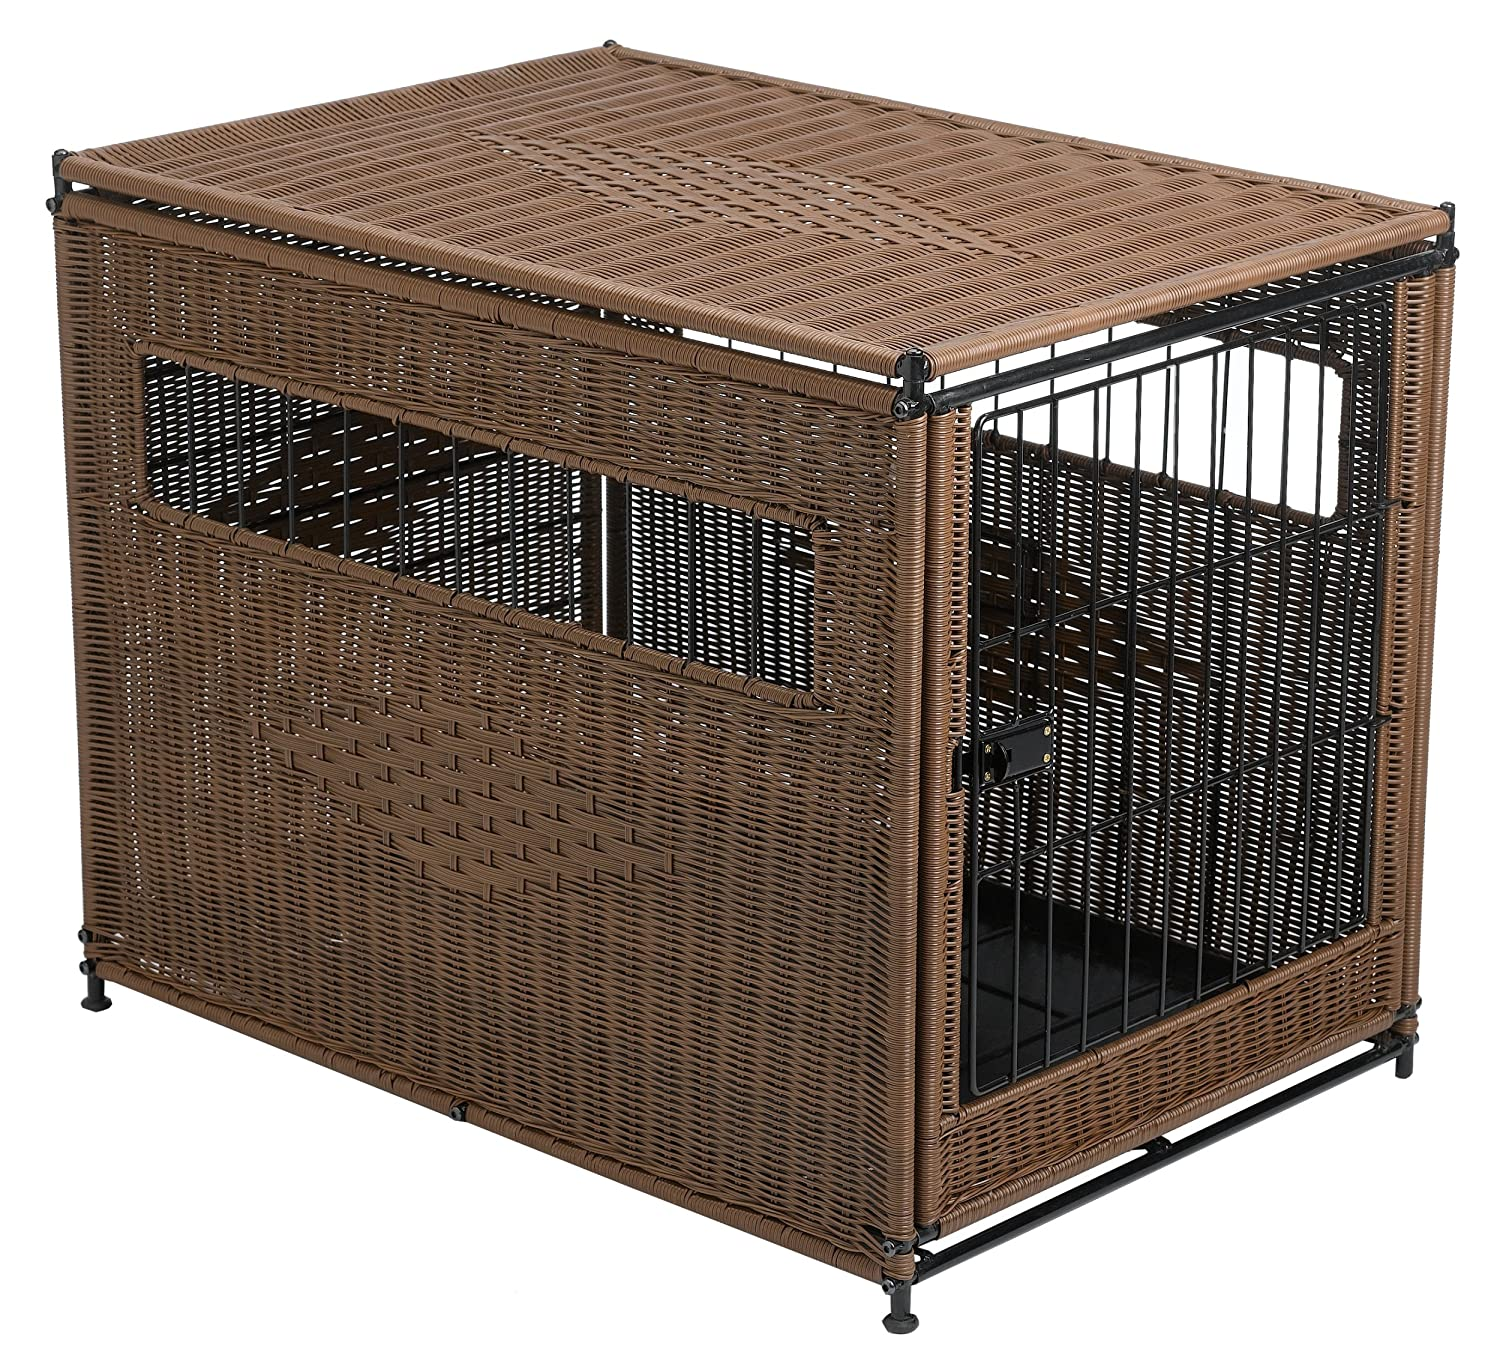 PetSafe Solvit Mr. Herzher's Indoor Pet Home